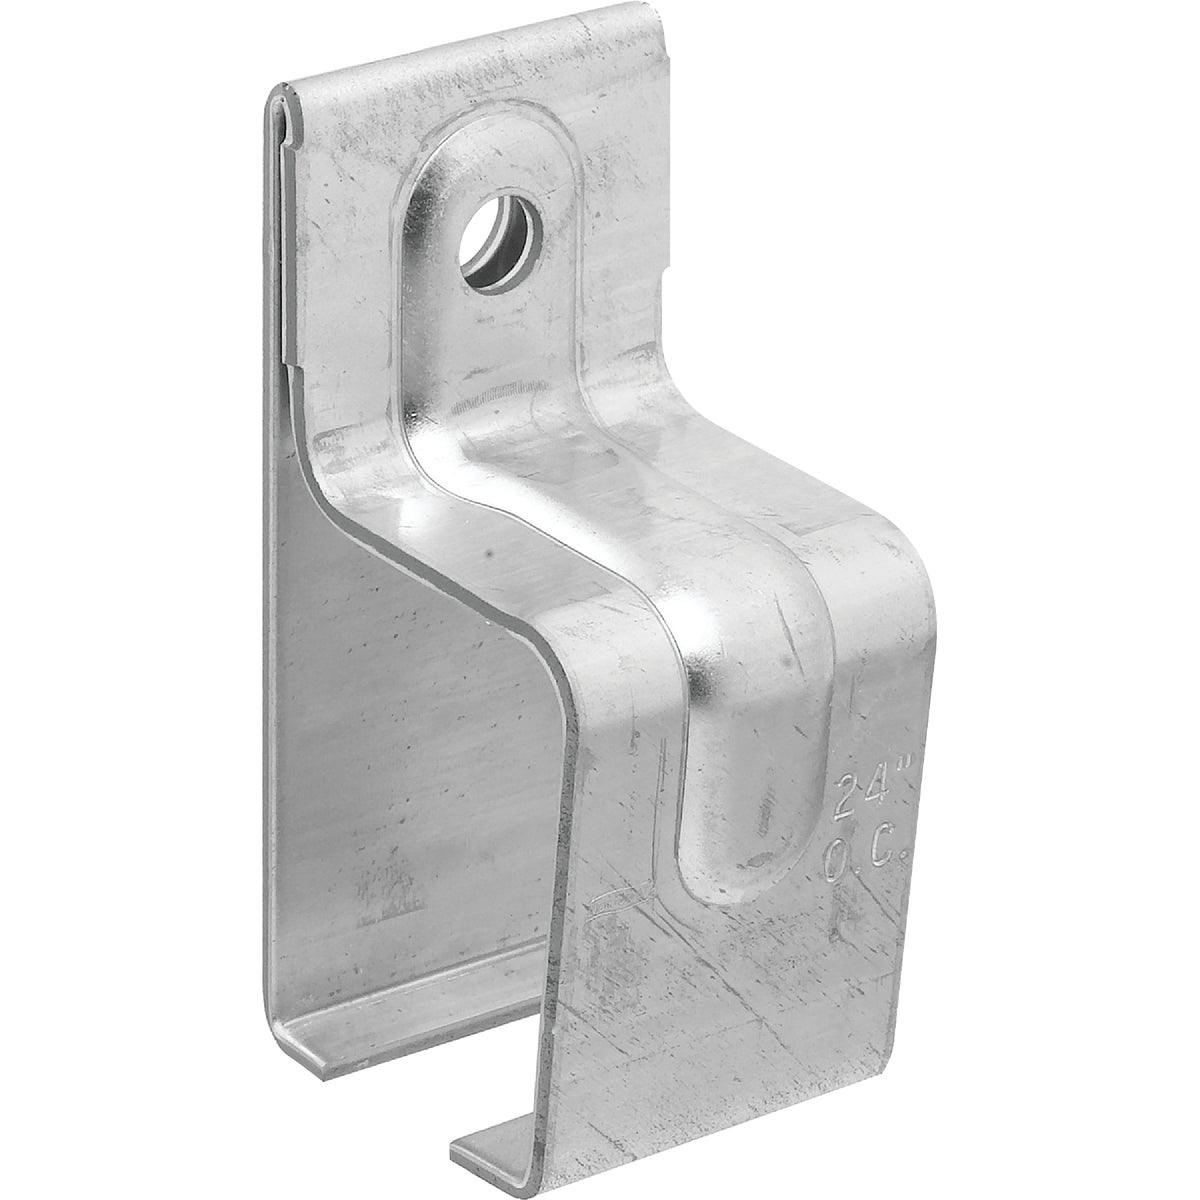 WALL MNT SINGLE BRACKET - N104349 by National Mfg Co